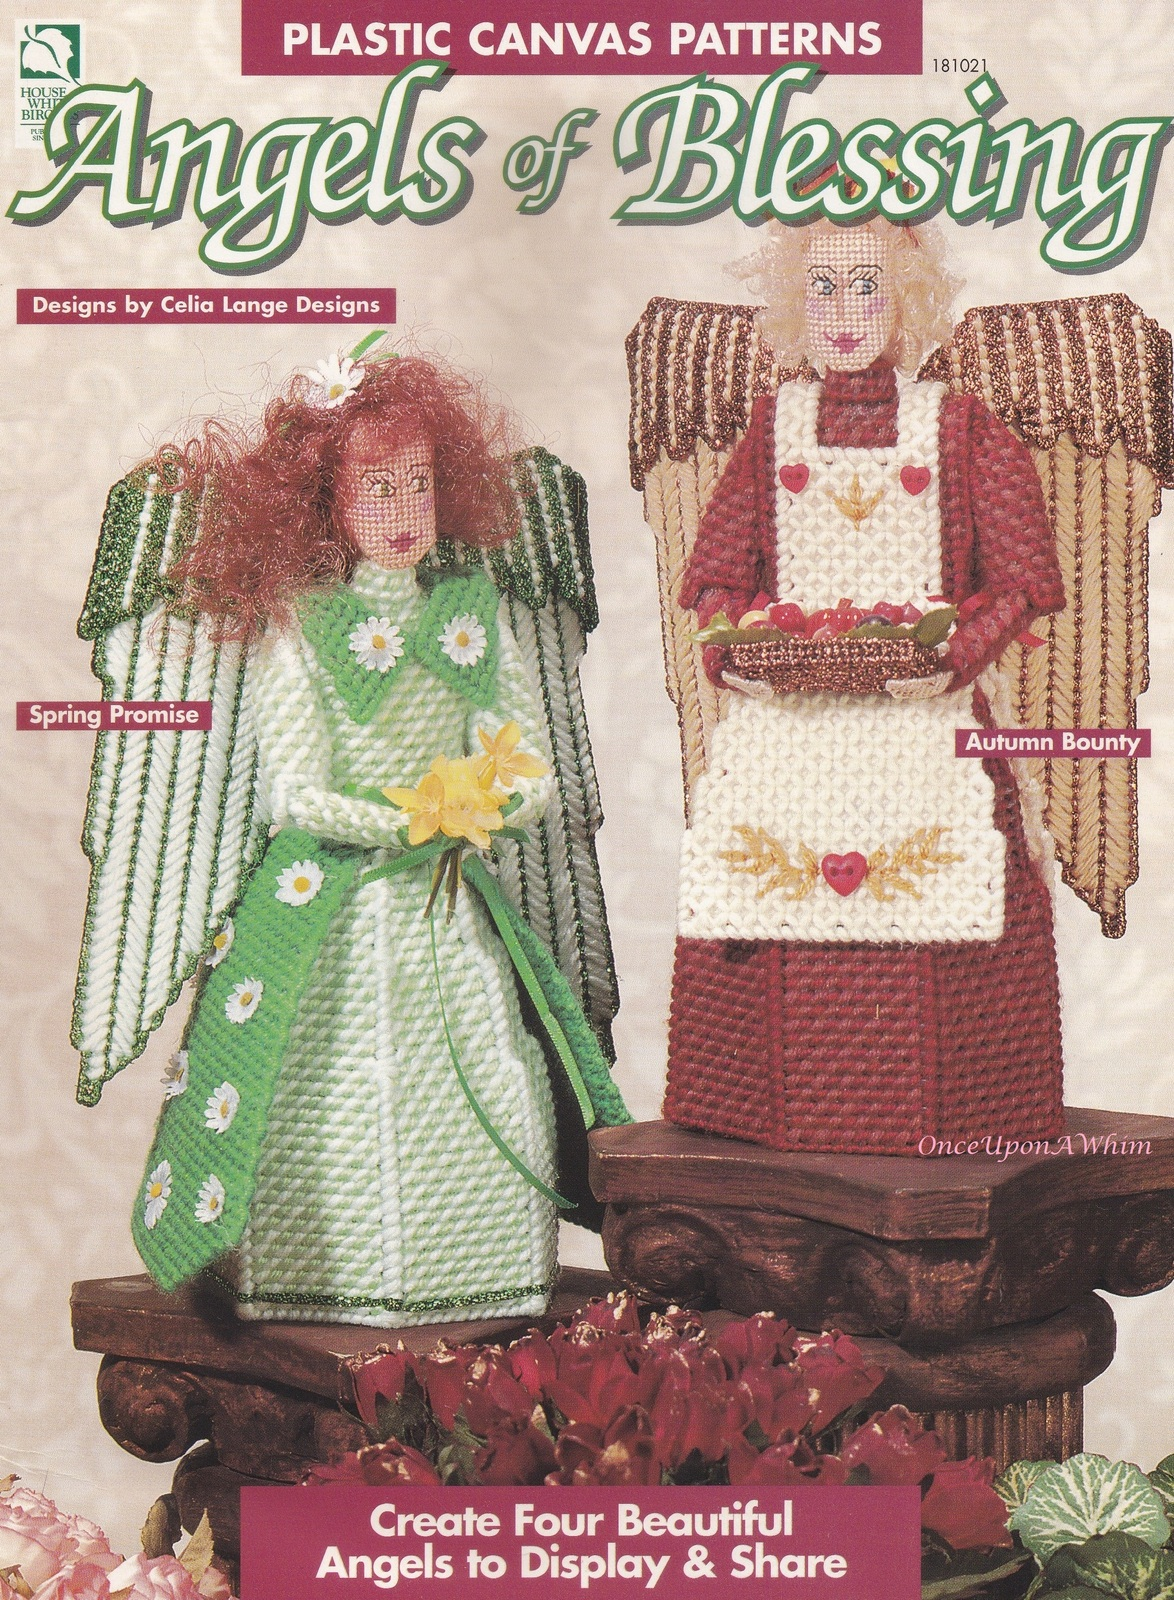 Primary image for Four Seasons Angels of Blessing, Plastic Canvas Pattern Booklet HWB 181021 NEW